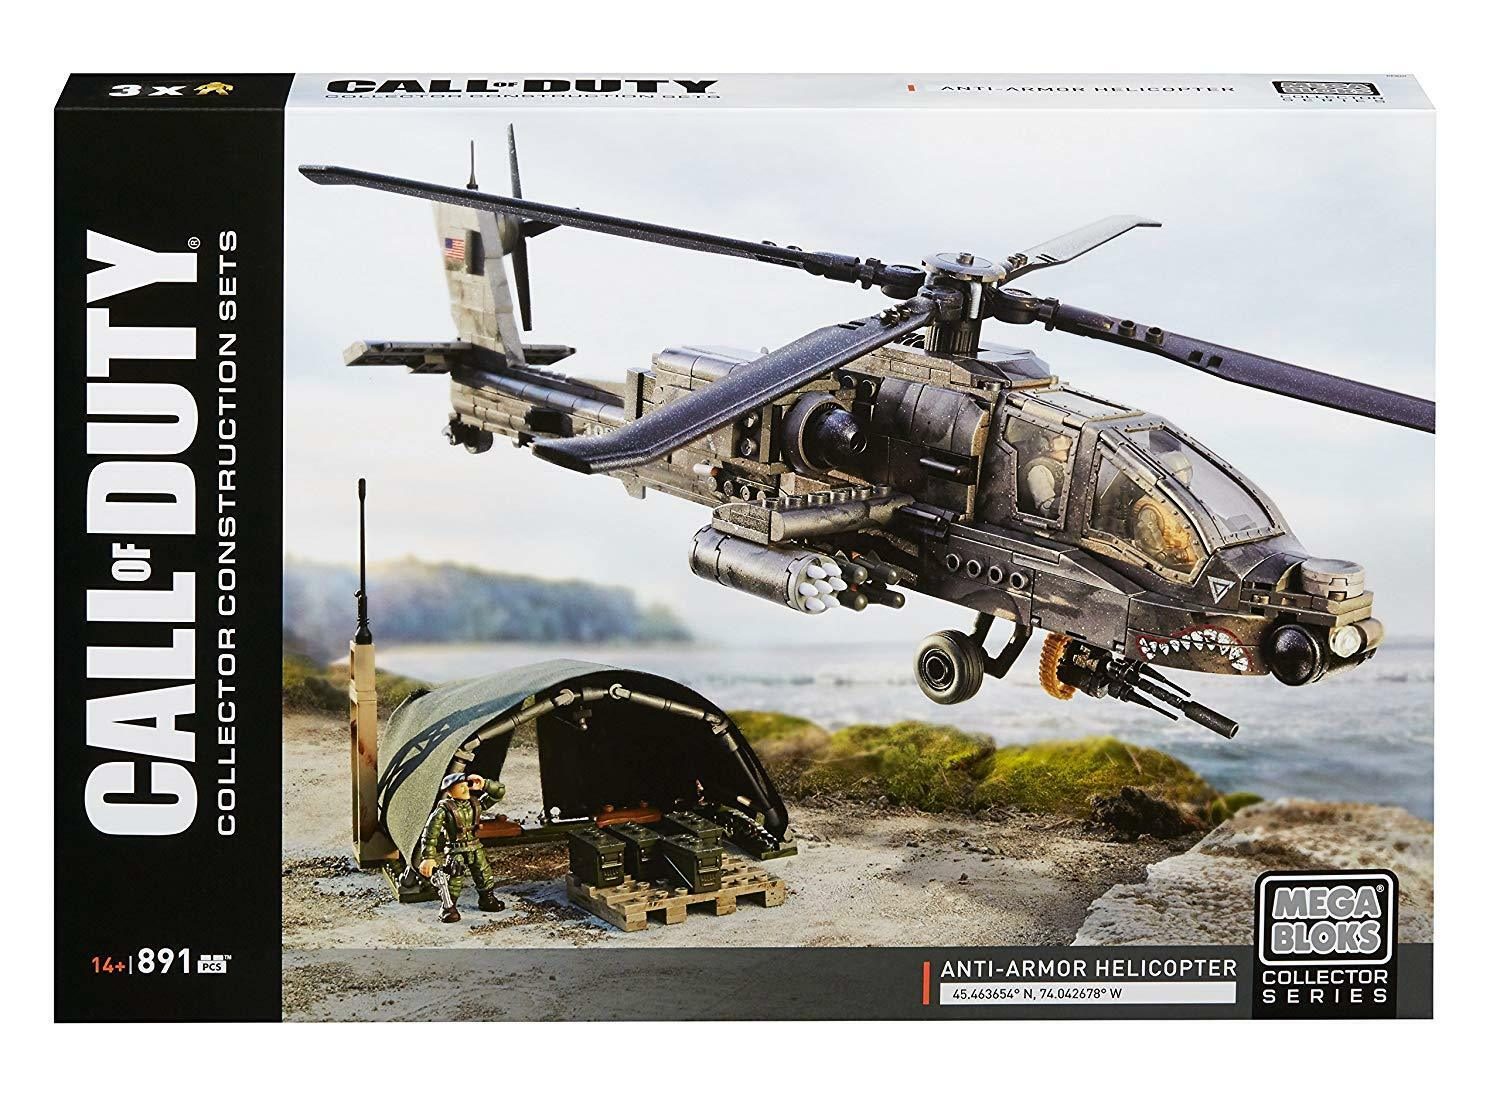 Mega Bloks Call of Duty Anti Armor Helicopter Collector Construction Set DPB60